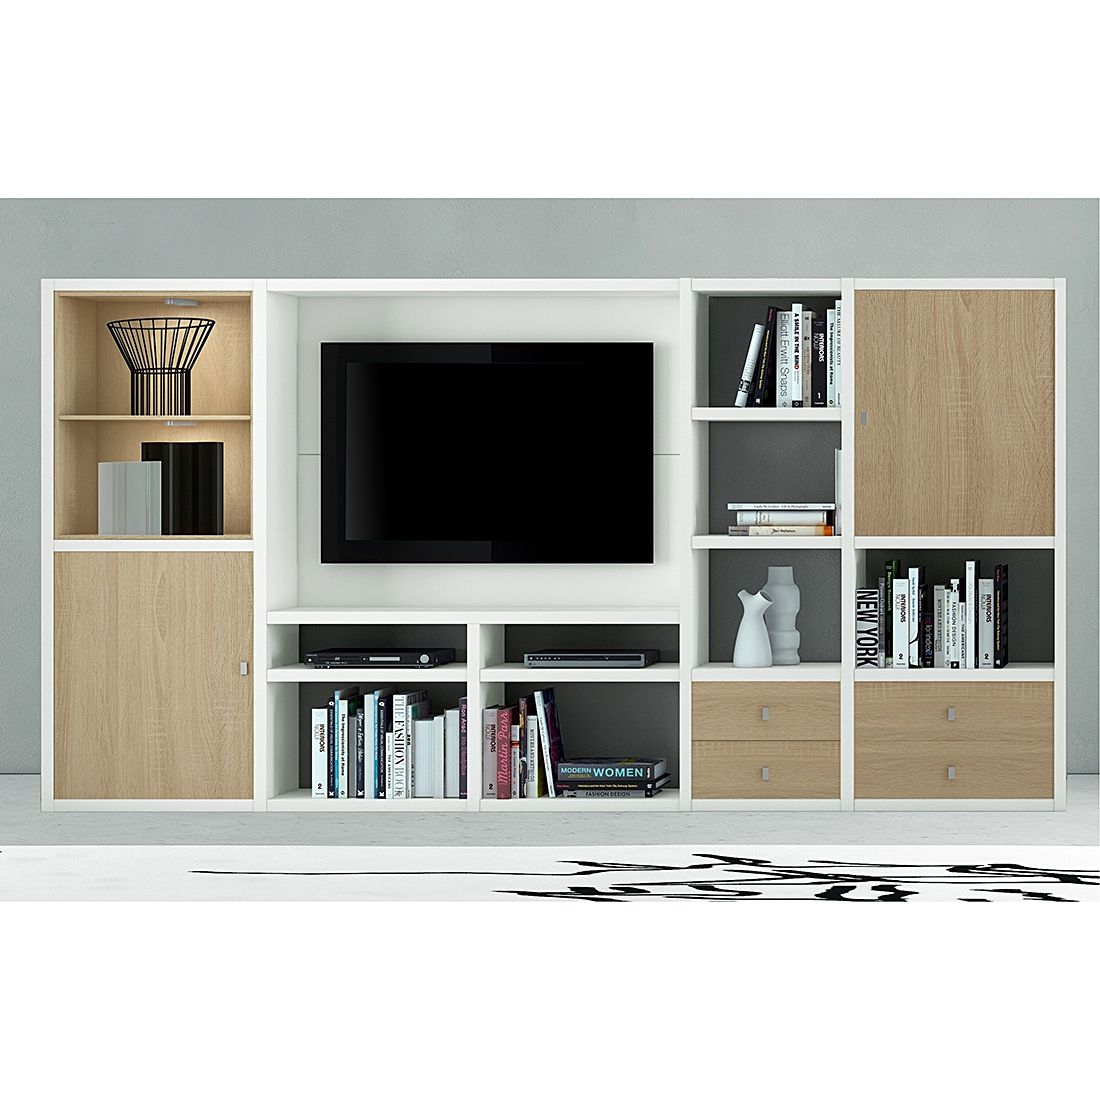 tv wand kaufen free borchardt mbel tv wand made in germany tlg kaufen with tv wand kaufen cool. Black Bedroom Furniture Sets. Home Design Ideas